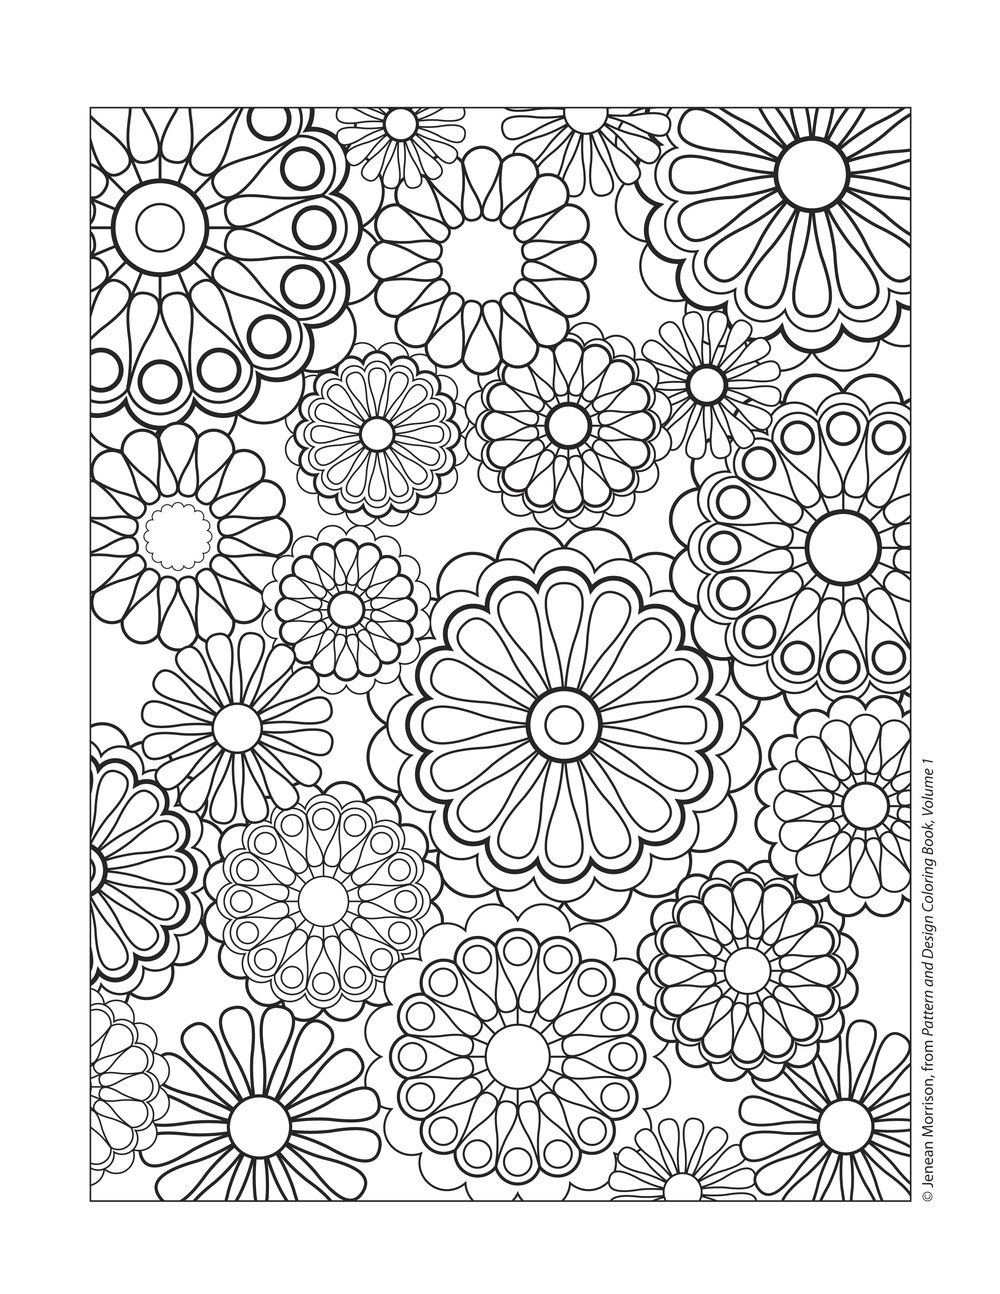 Printable Mosaic Coloring Pages  Download 6b - Free For kids